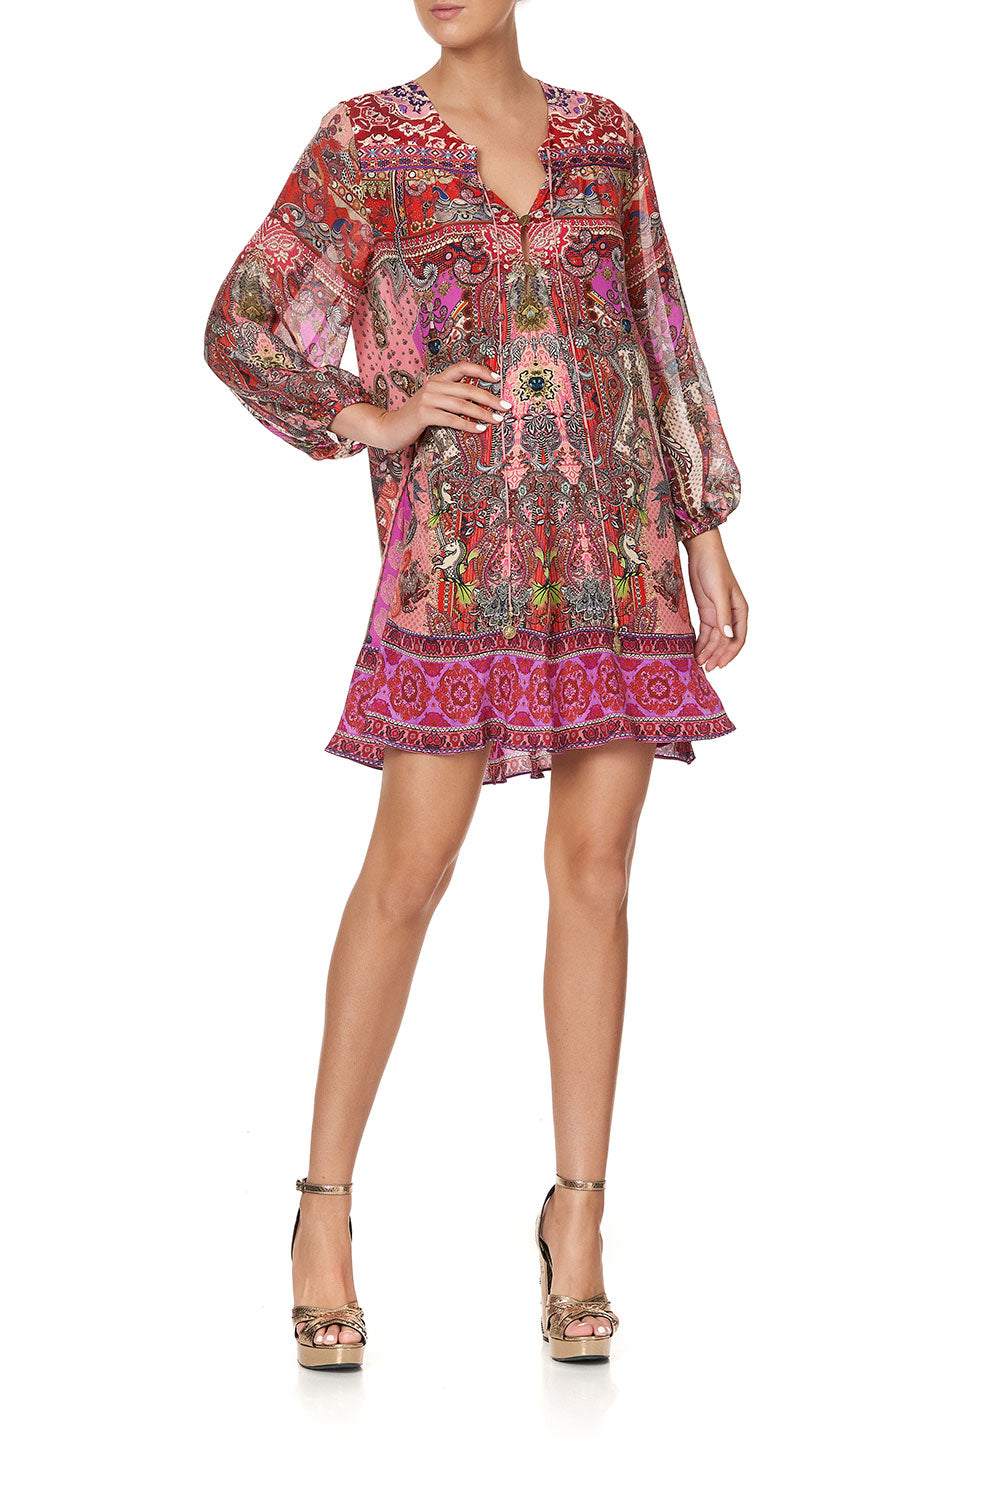 BUTTON UP DRESS WITH YOKE LOTUS LOVERS